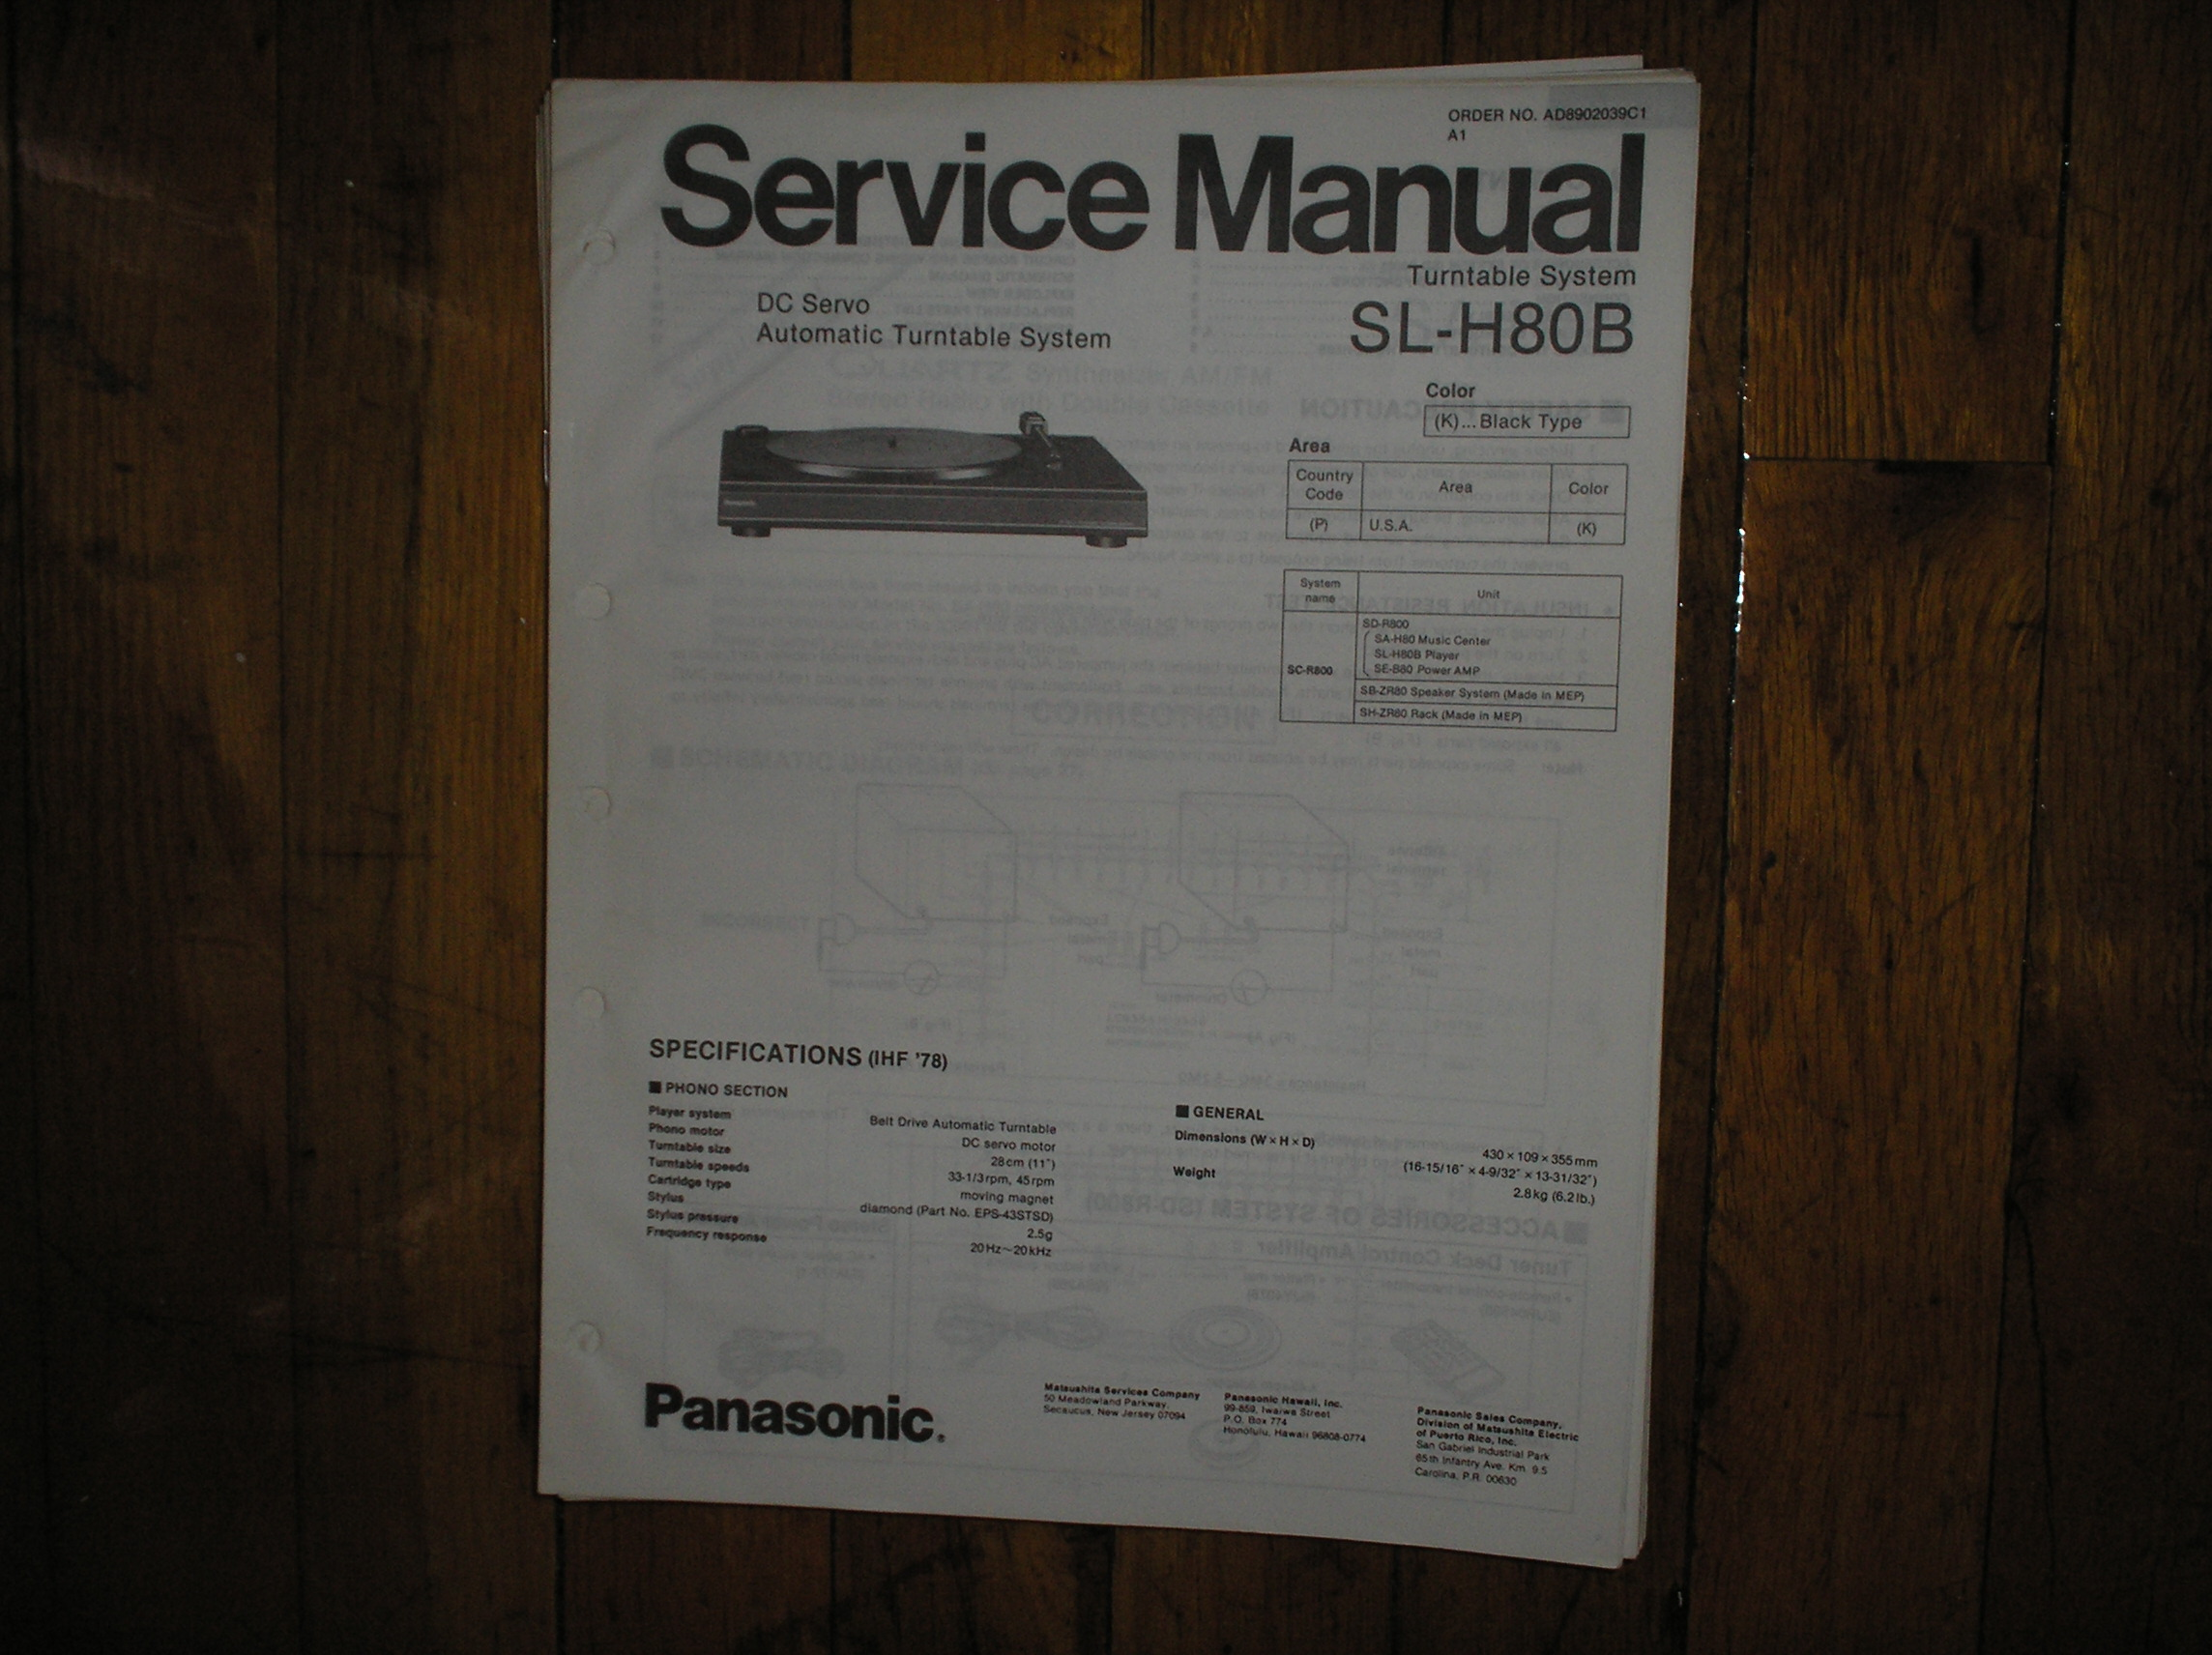 SL-H80B Turntable Service Manual